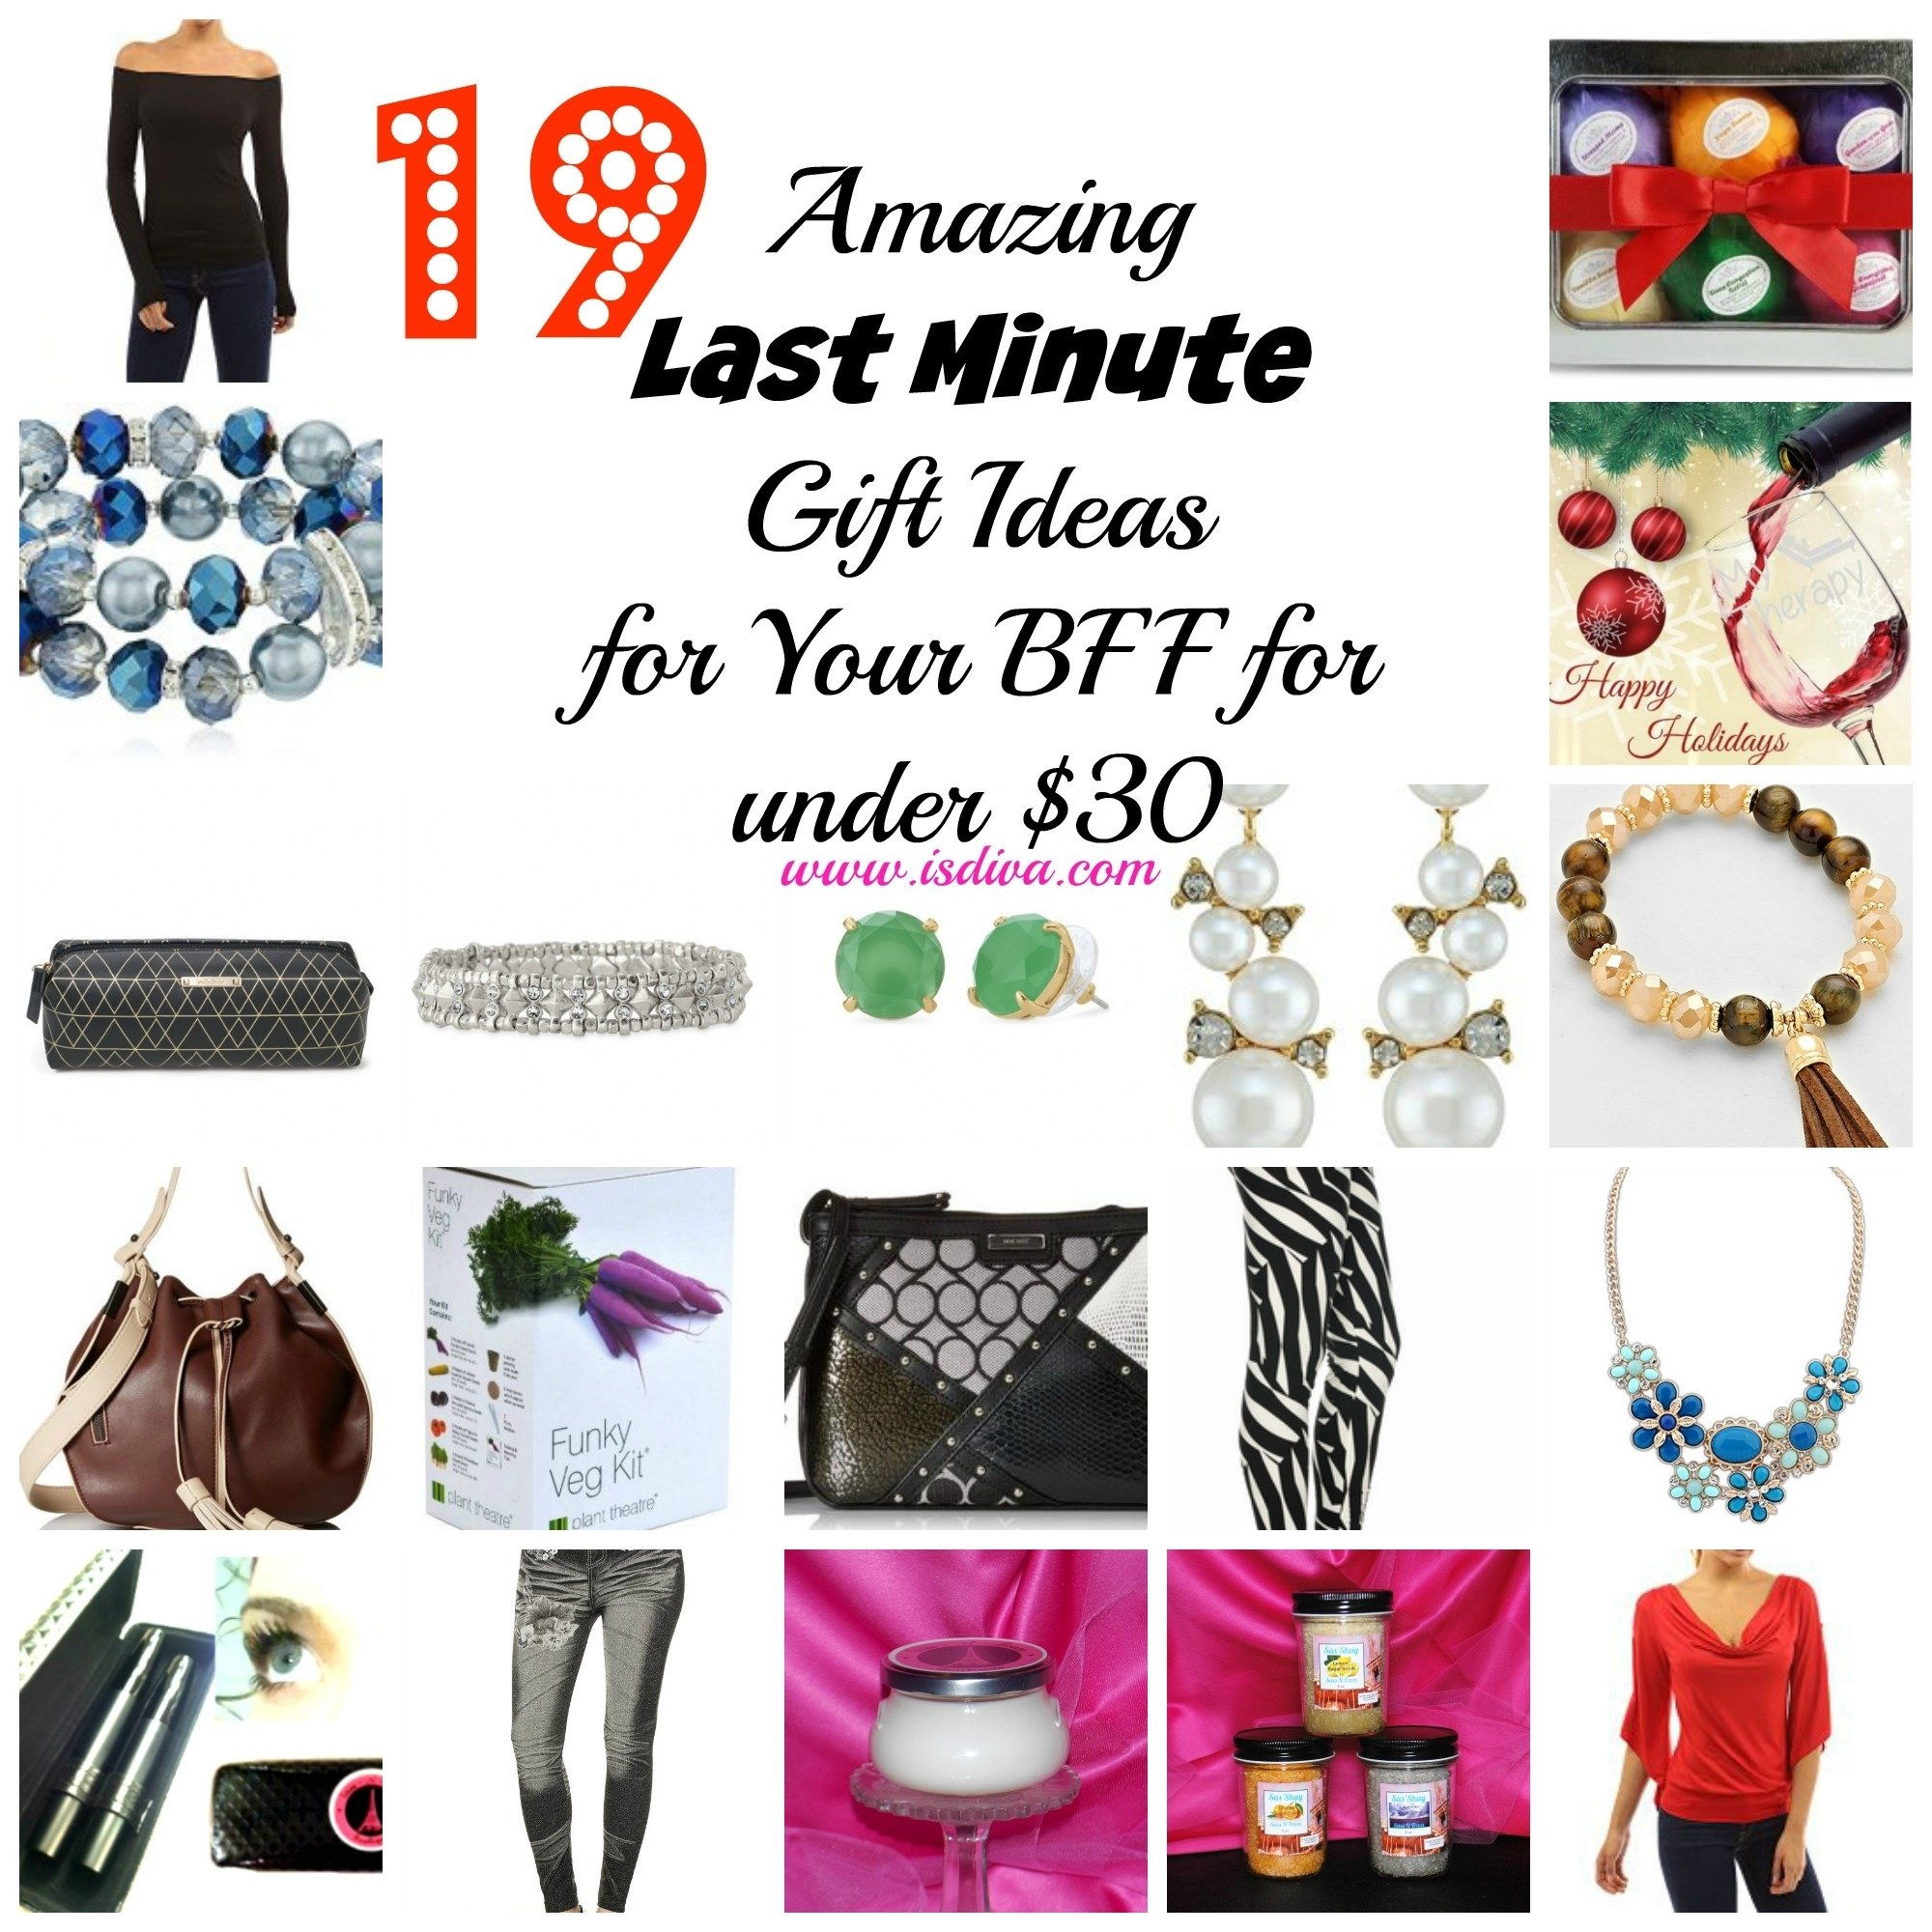 10 Amazing Last Minute Gift Ideas For Her compelling and every birthday gift ideas in people will compliment 5